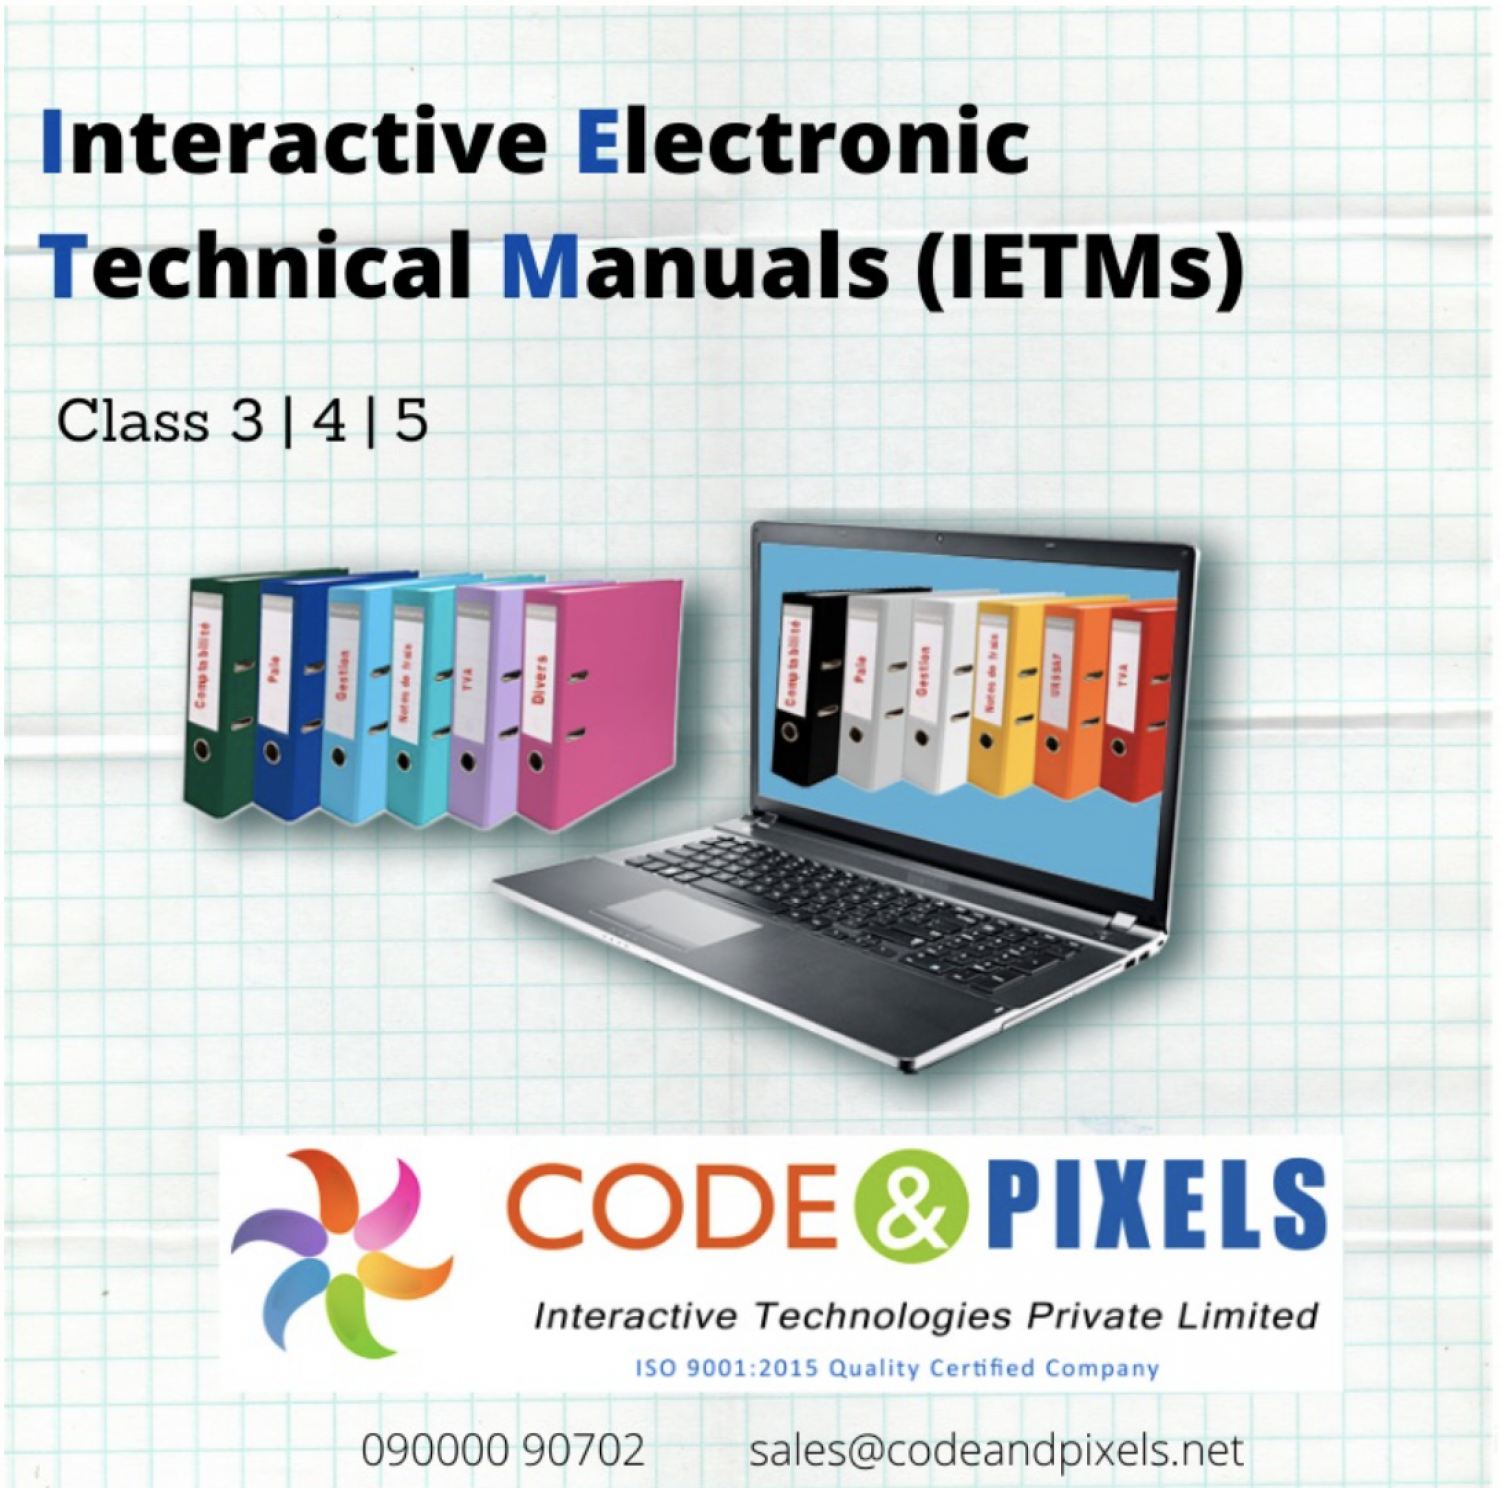 Interactive Electronic Technical Manual Services Levels in Hyderabad Infographic